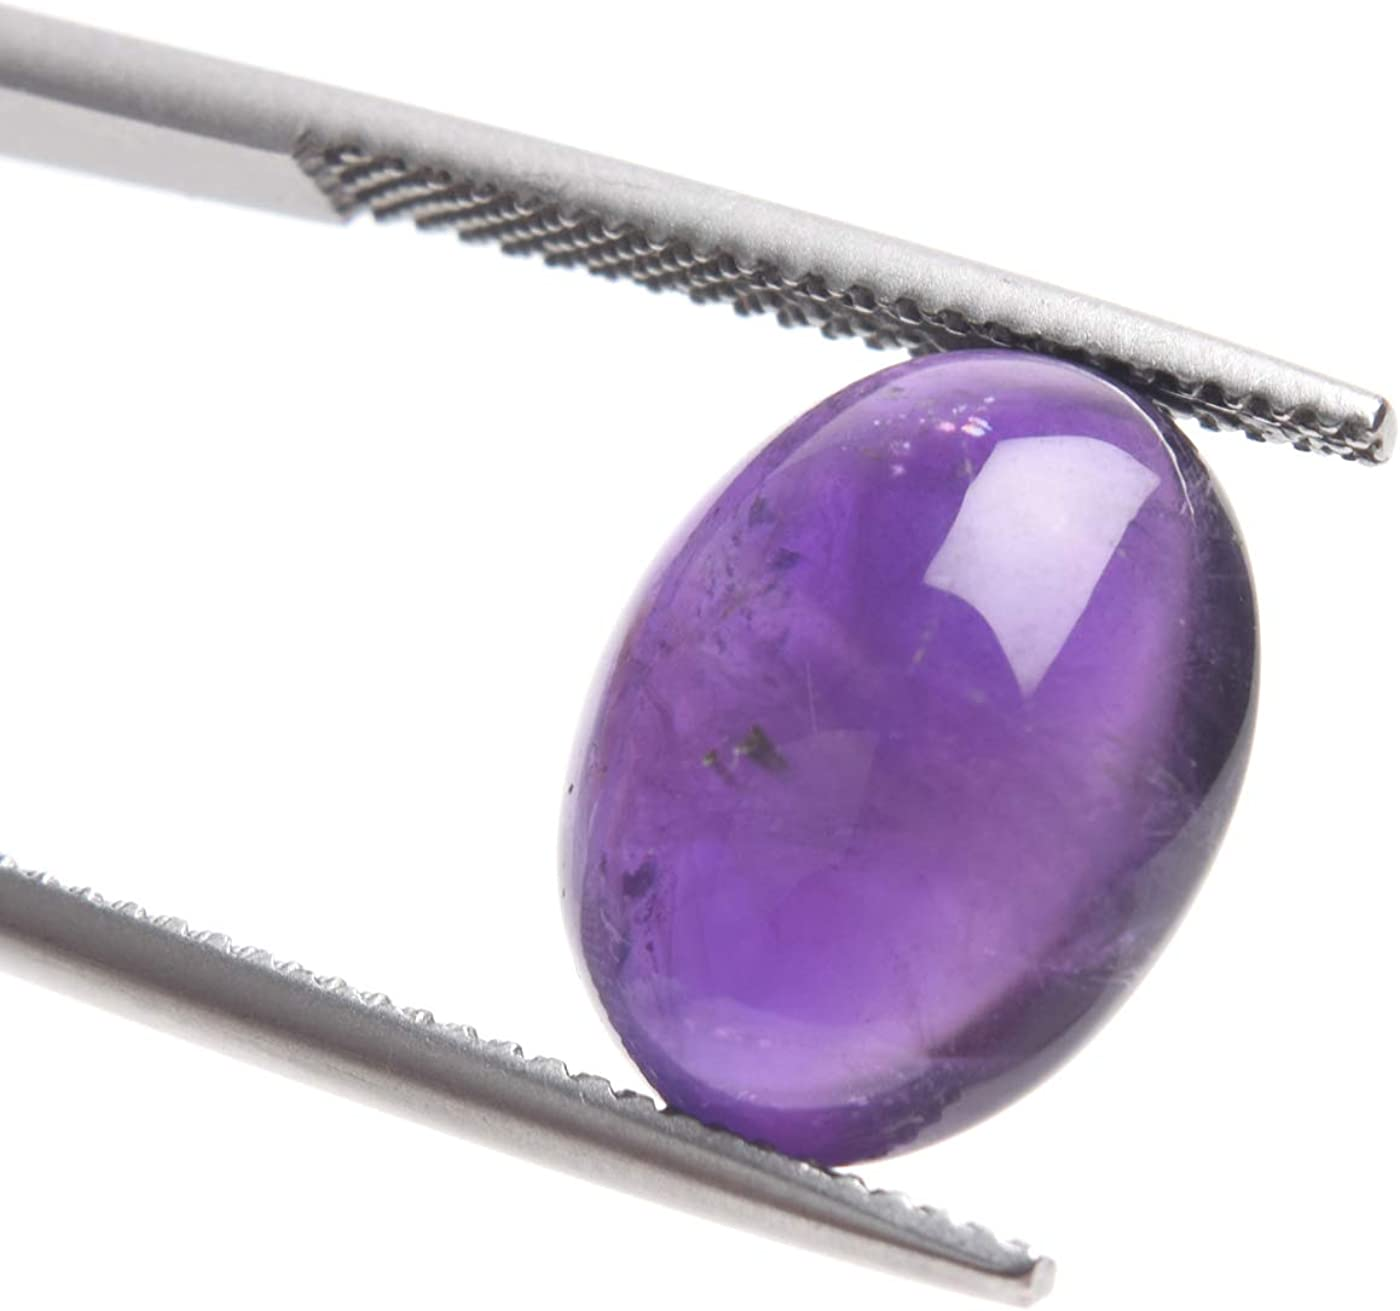 Natural Amethyst Cab Lot Loose Gemstone For Jewelry P-1780 Details about  /9X11 MM Oval AAA++